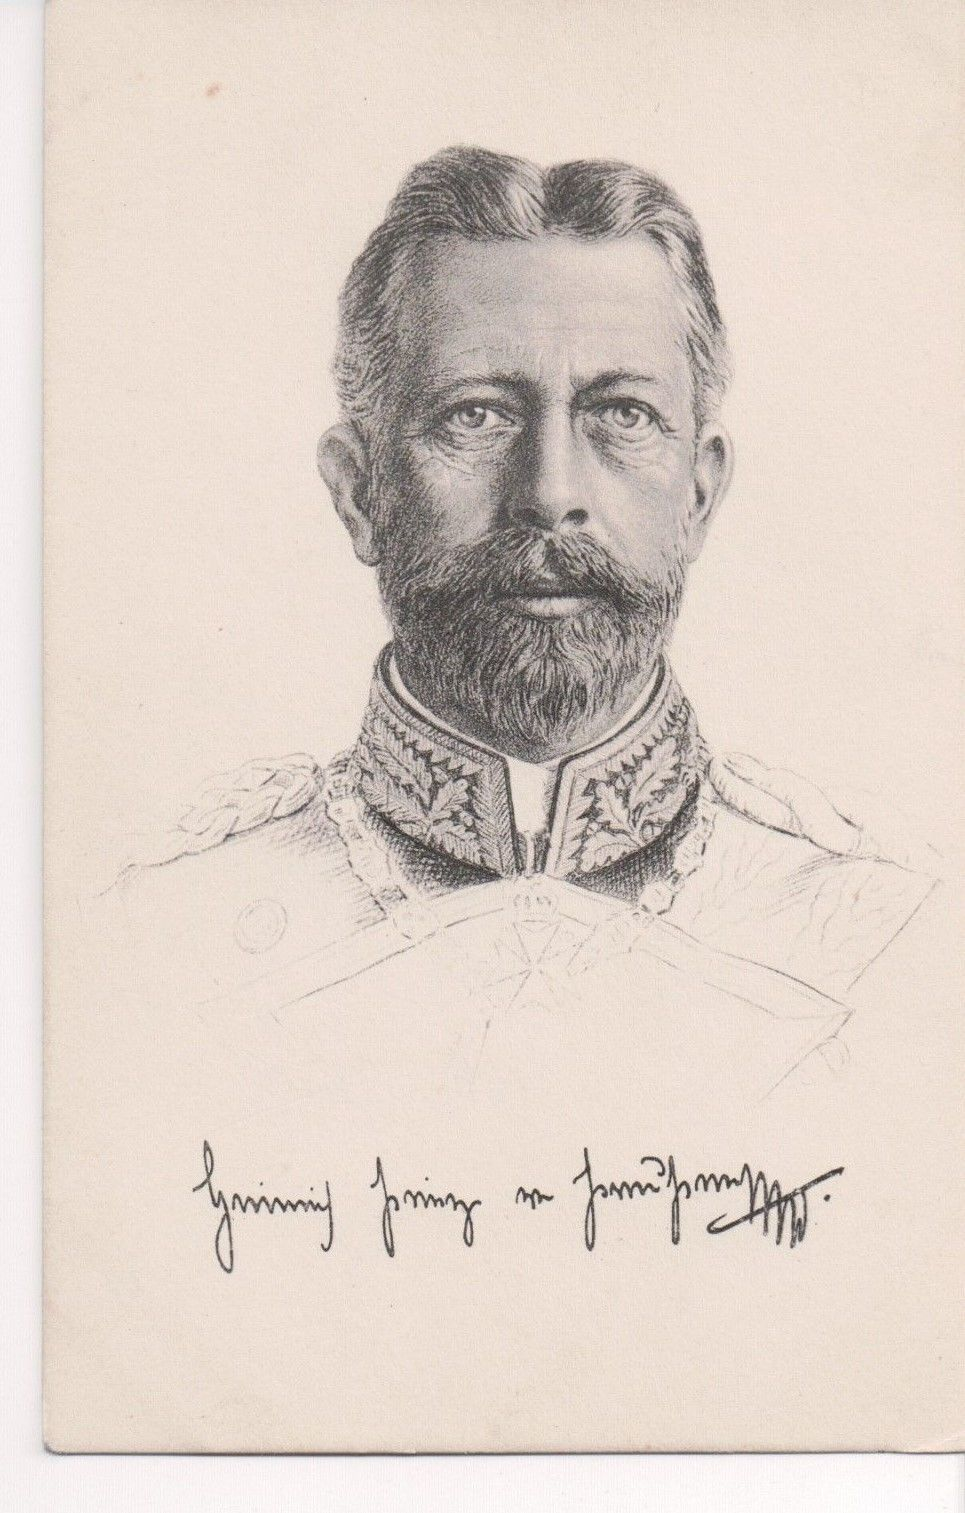 008 Prince Heinrich of Prussia (18621929) was a brother of